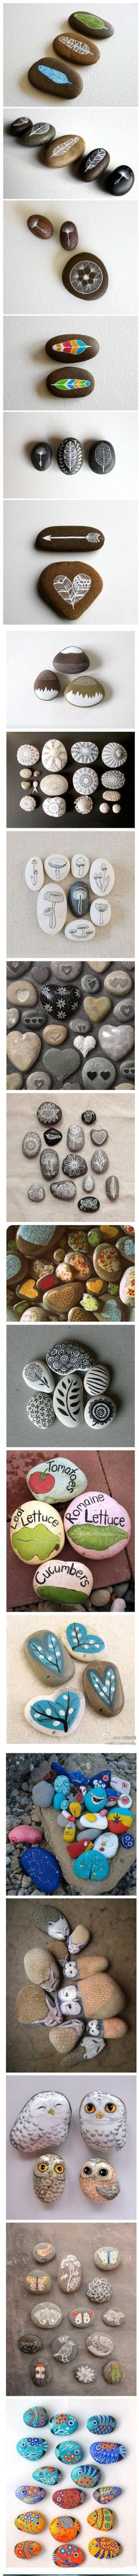 pebble art creative designs